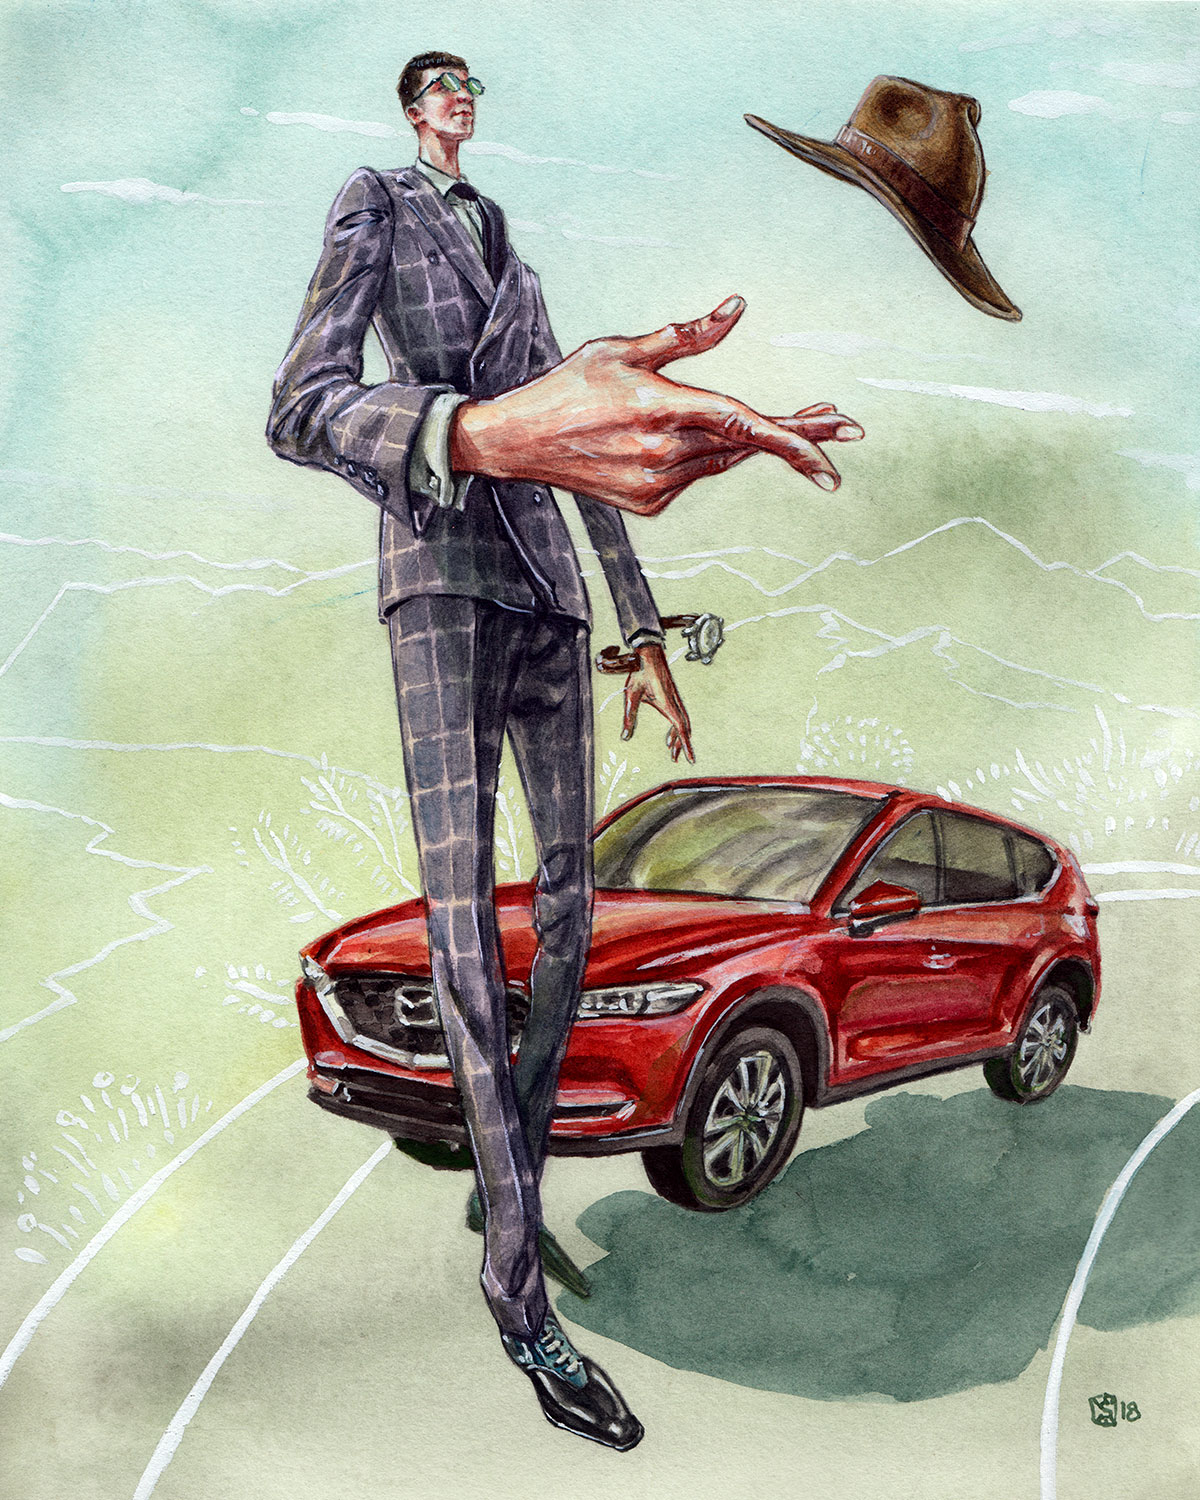 Mazda+CX-5+Road+Trip+fashion+illustration+by+Sunflowerman.jpeg